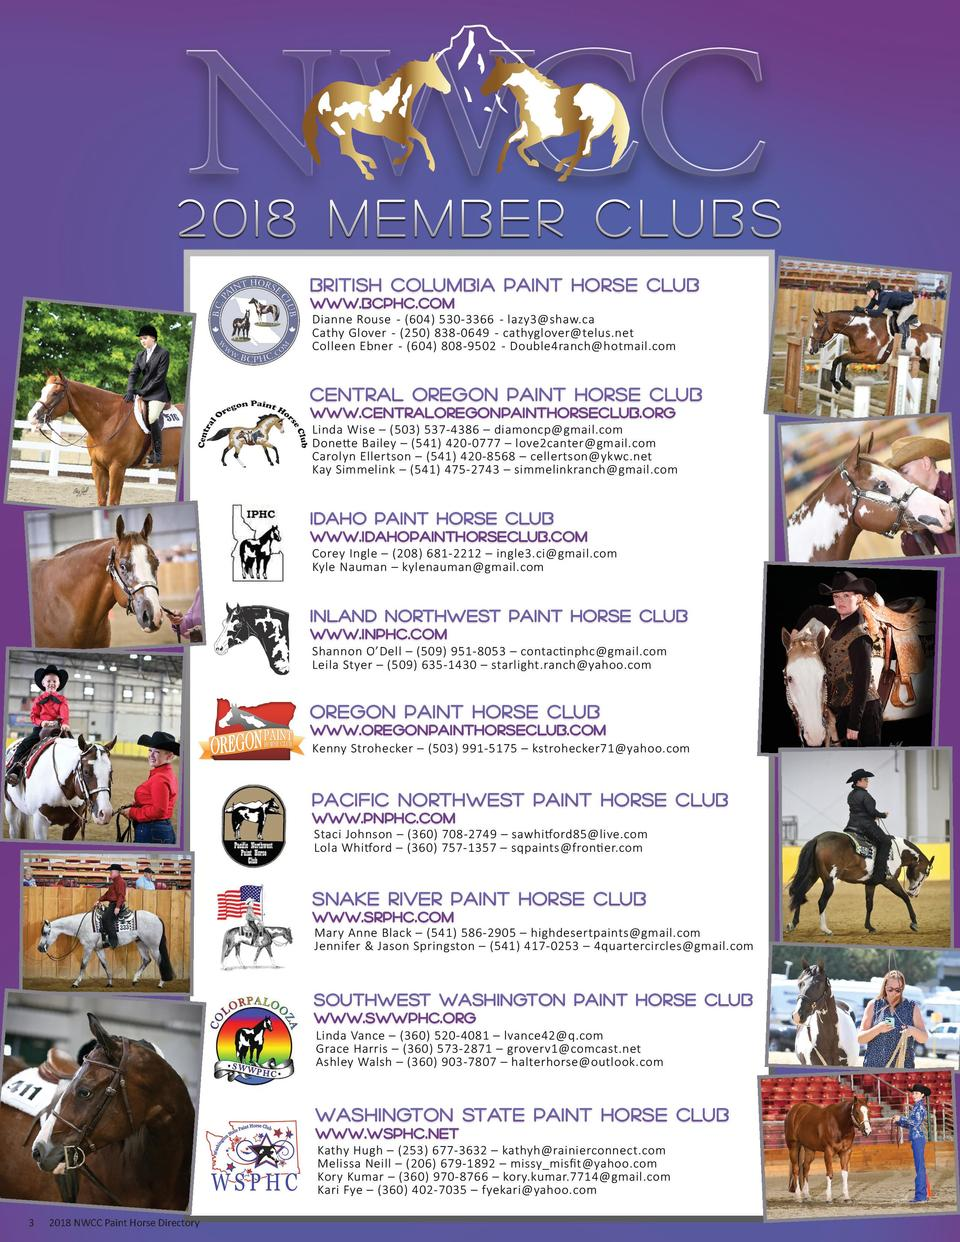 3  2018 NWCC Paint Horse Directory